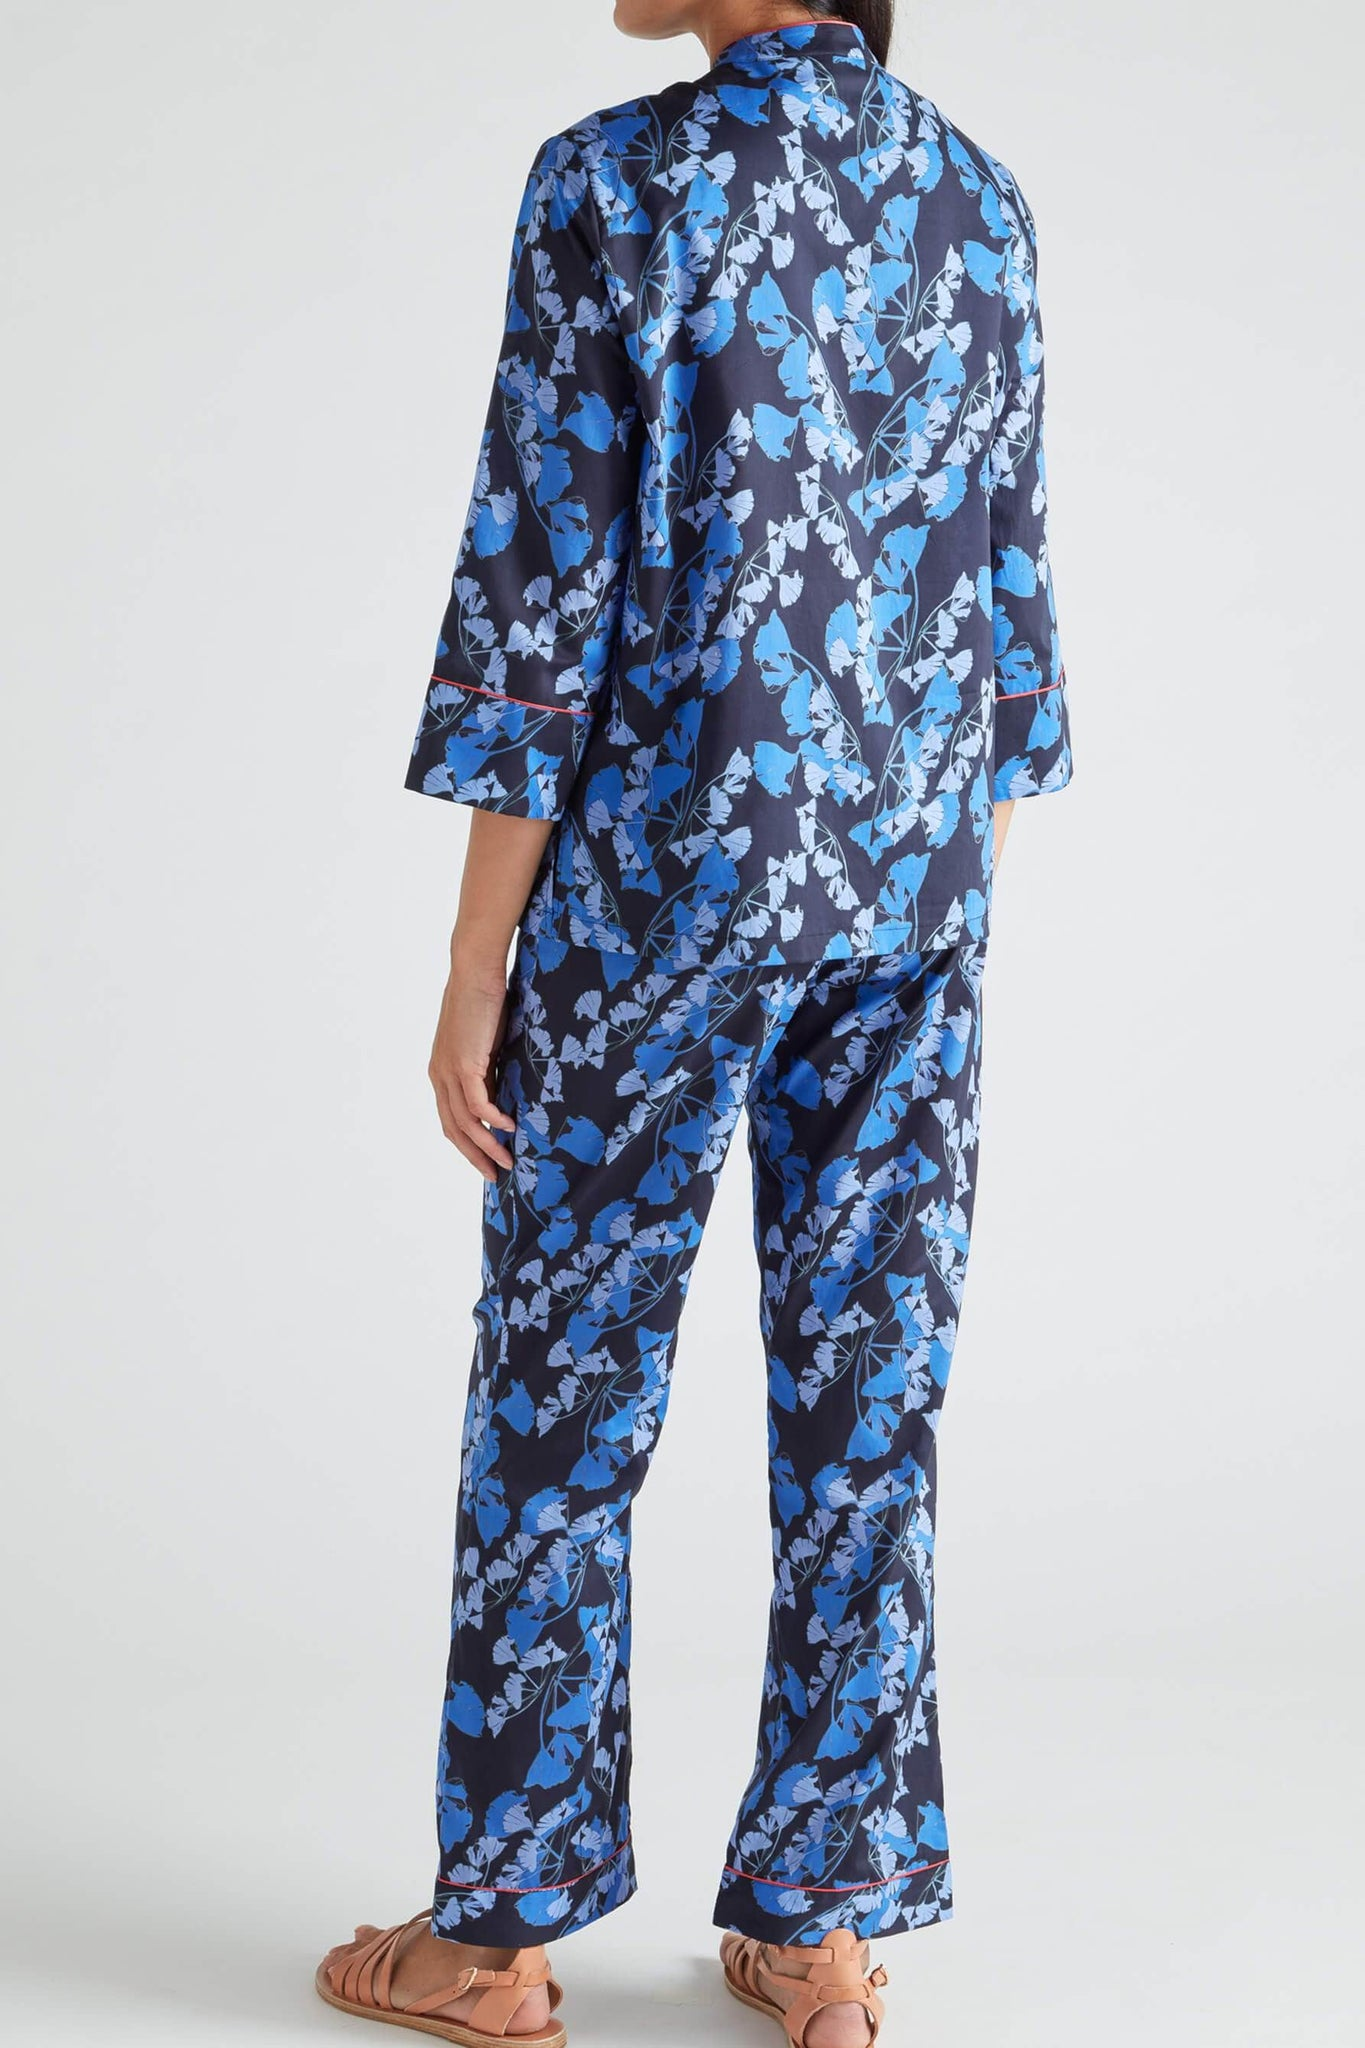 Midnight Mandarin Blue Palm Cotton Pajama Set from Yolke